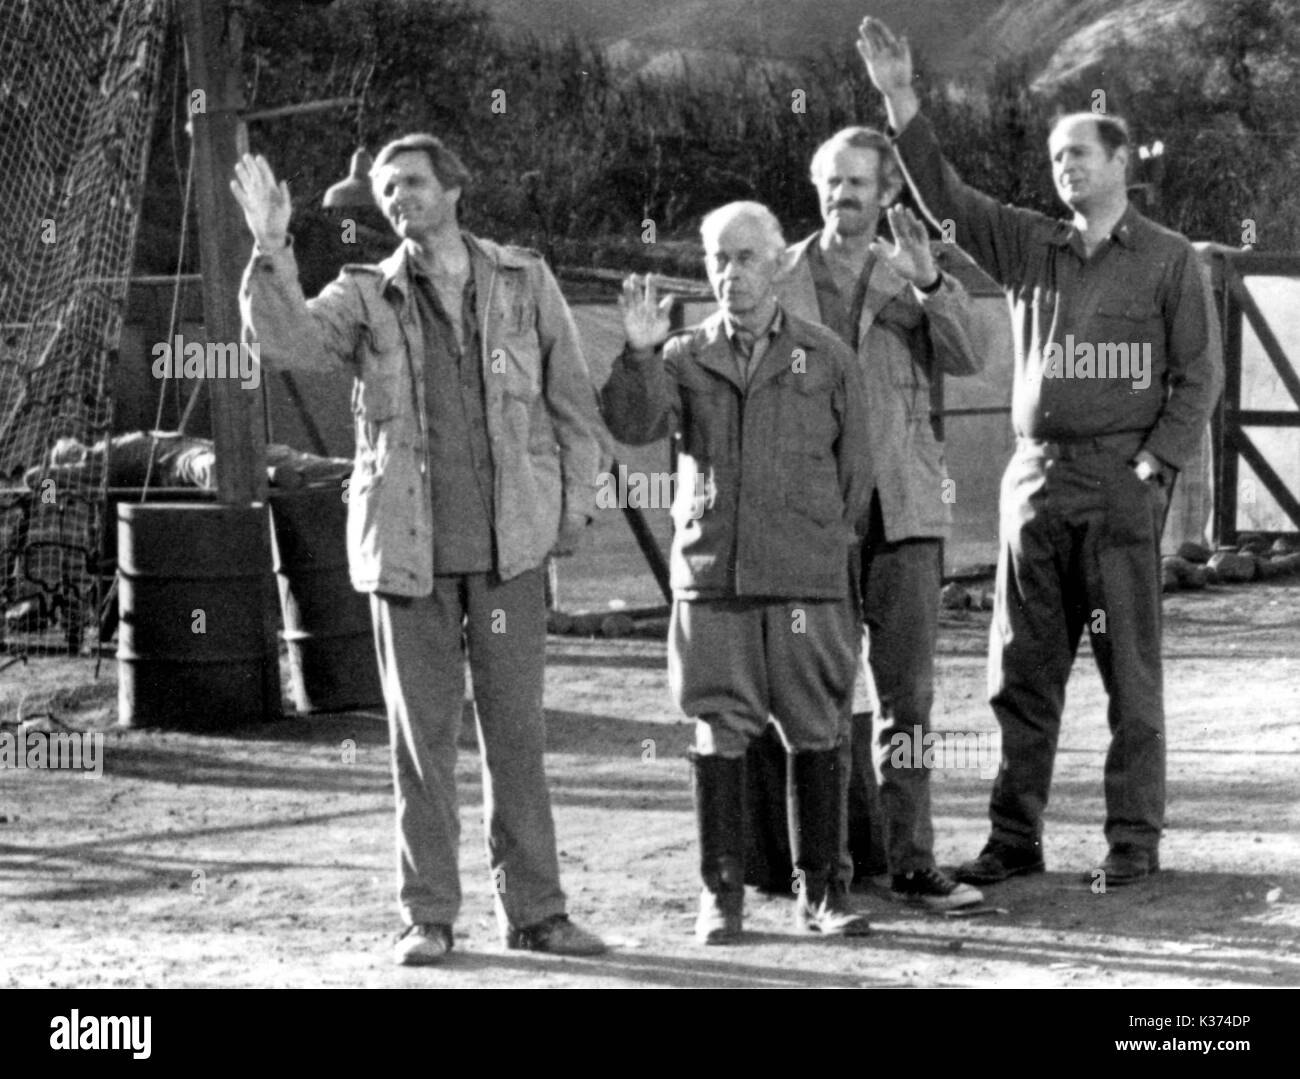 Mash Aka Mash Alan Alda Mike Farrell Harry Morgan David Ogden